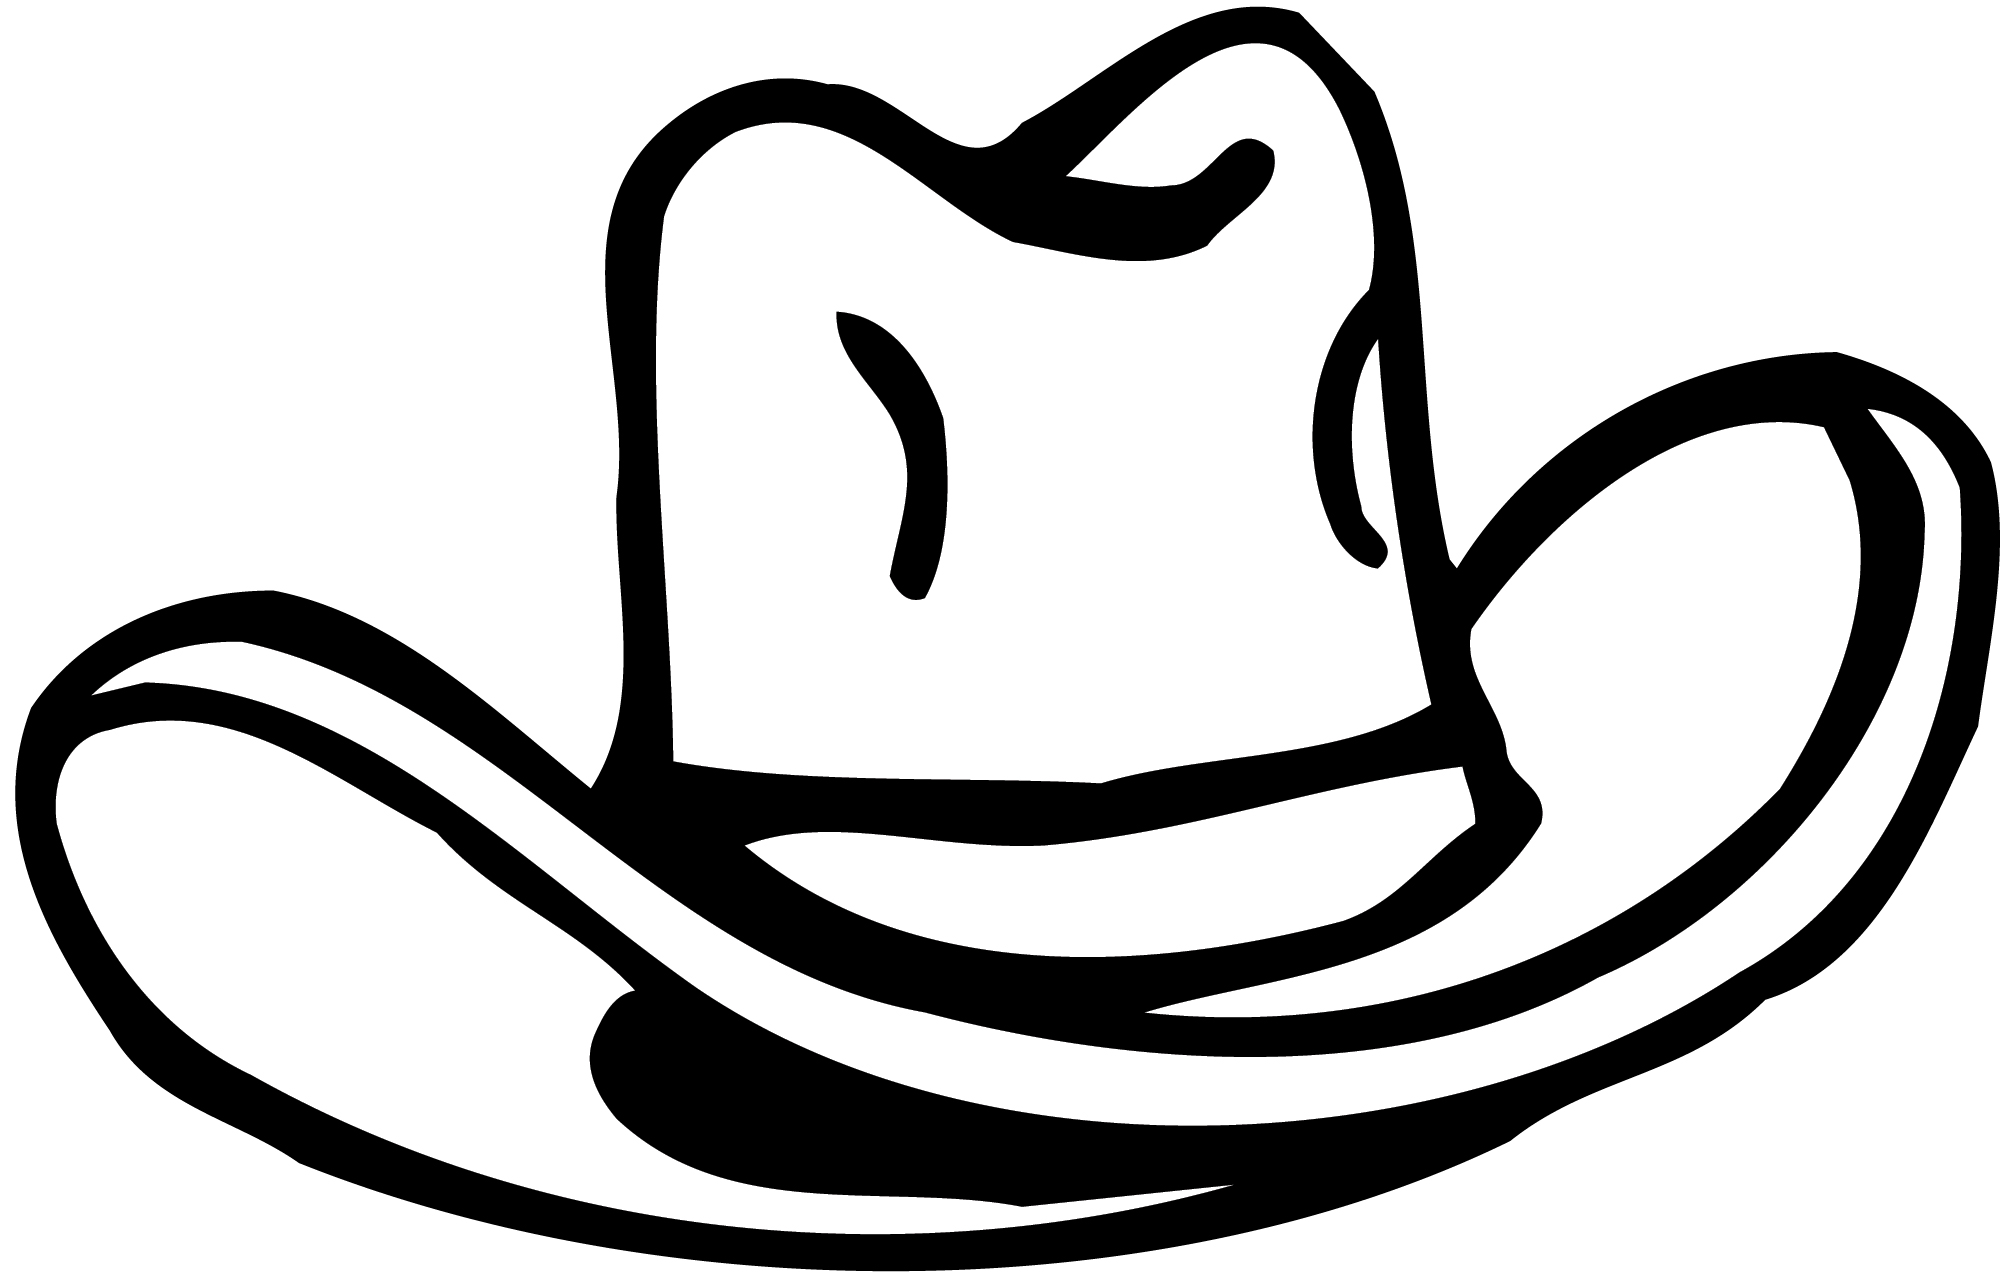 hight resolution of clipart outline cowboy hat with heart